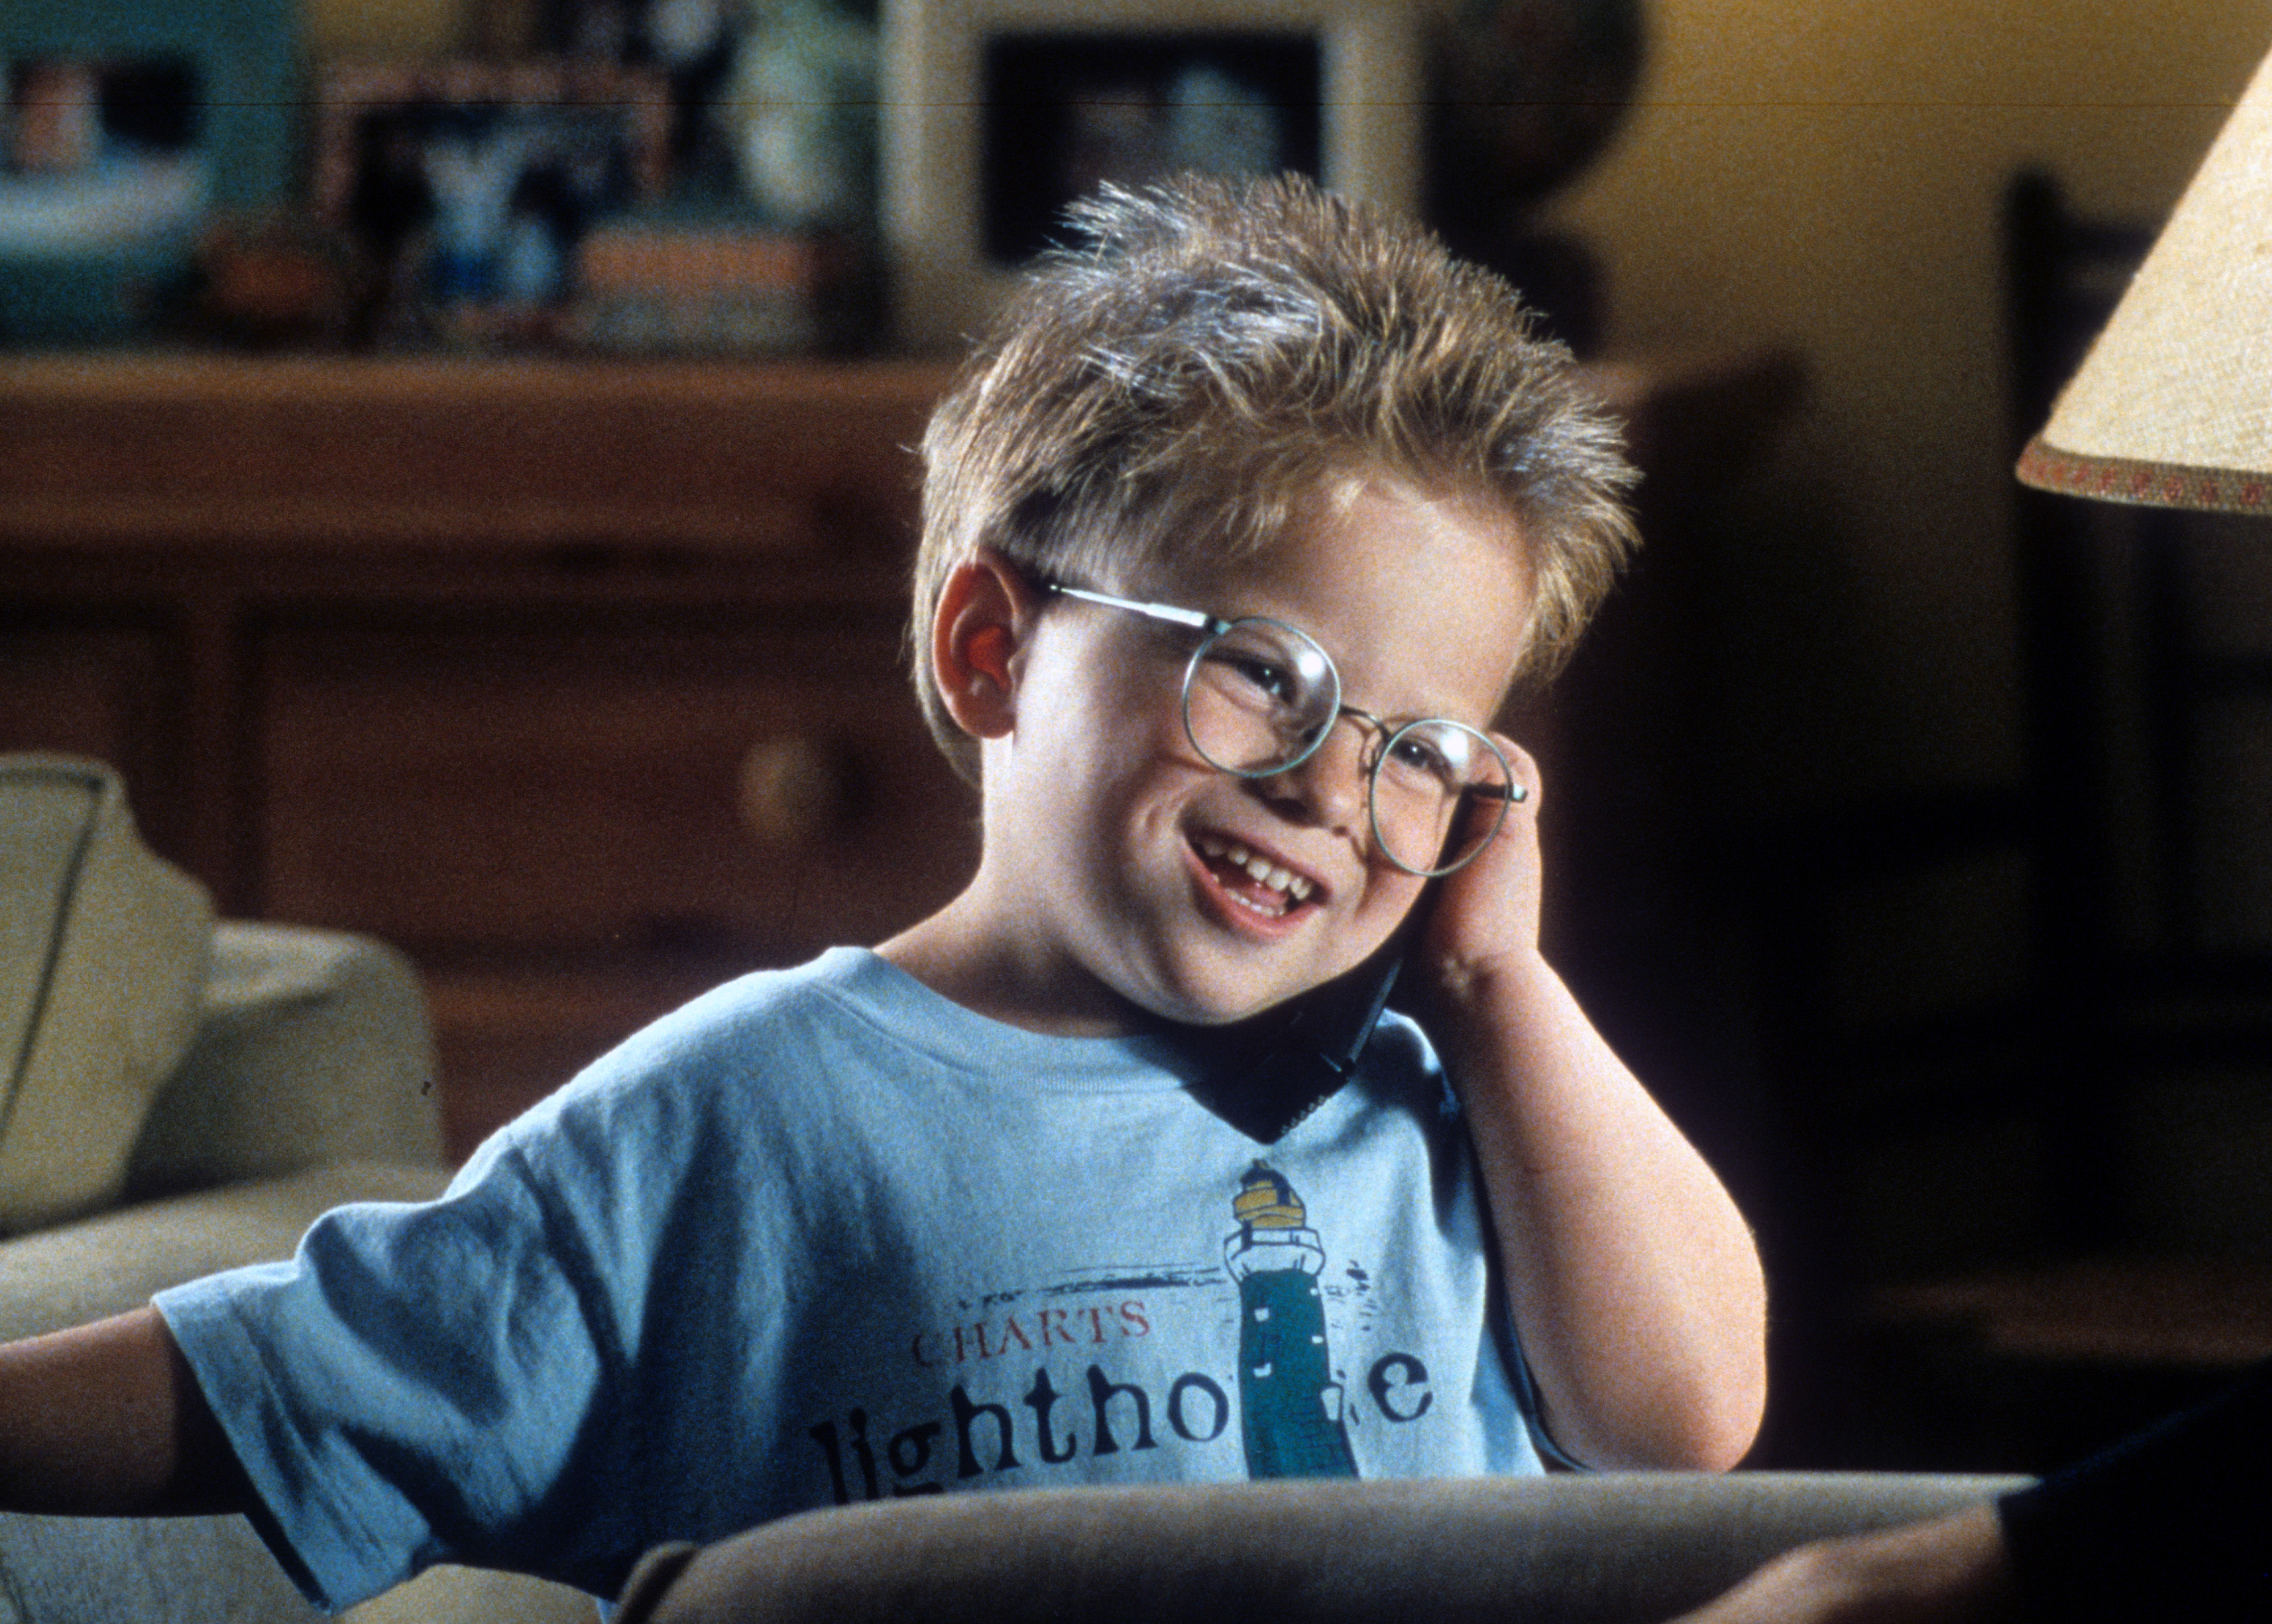 Jonathan Lipnicki talks on a phone in a scene from the film 'Jerry Maguire', 1996.